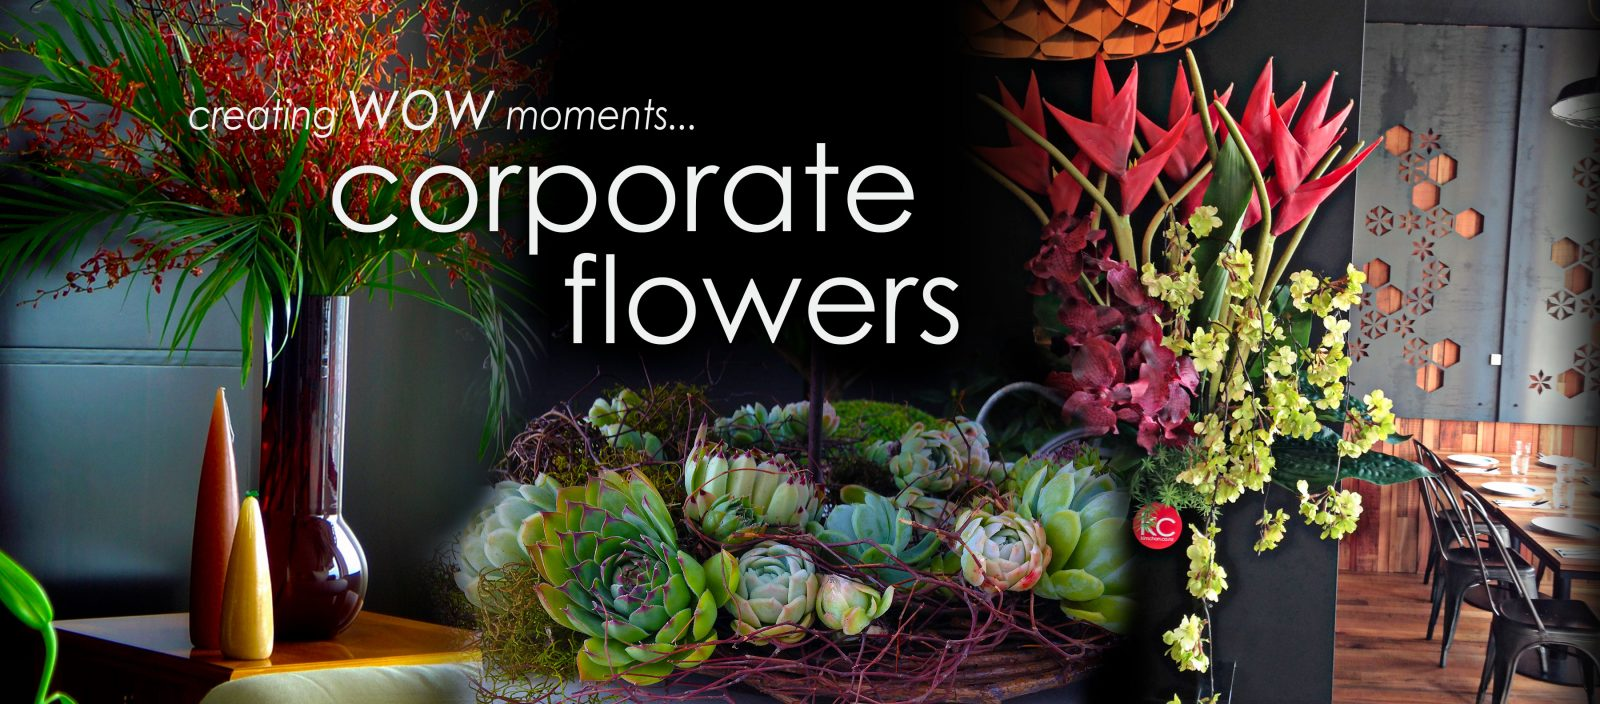 corporateflowers